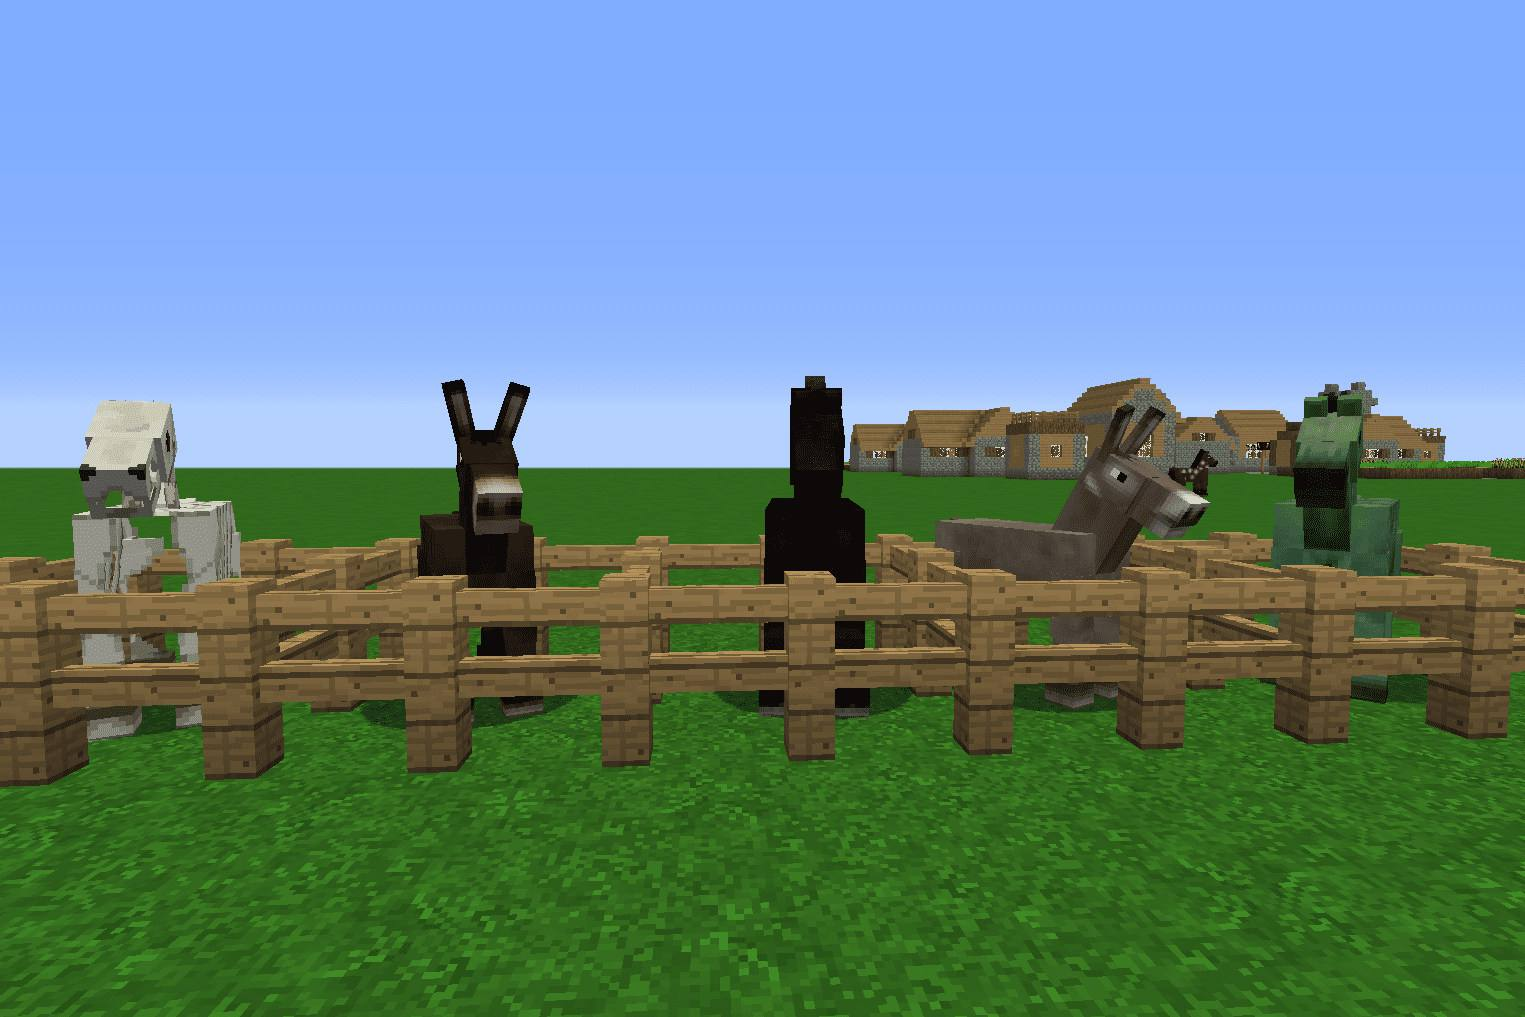 Minecraft Animals Explained Horses Donkeys And Mules